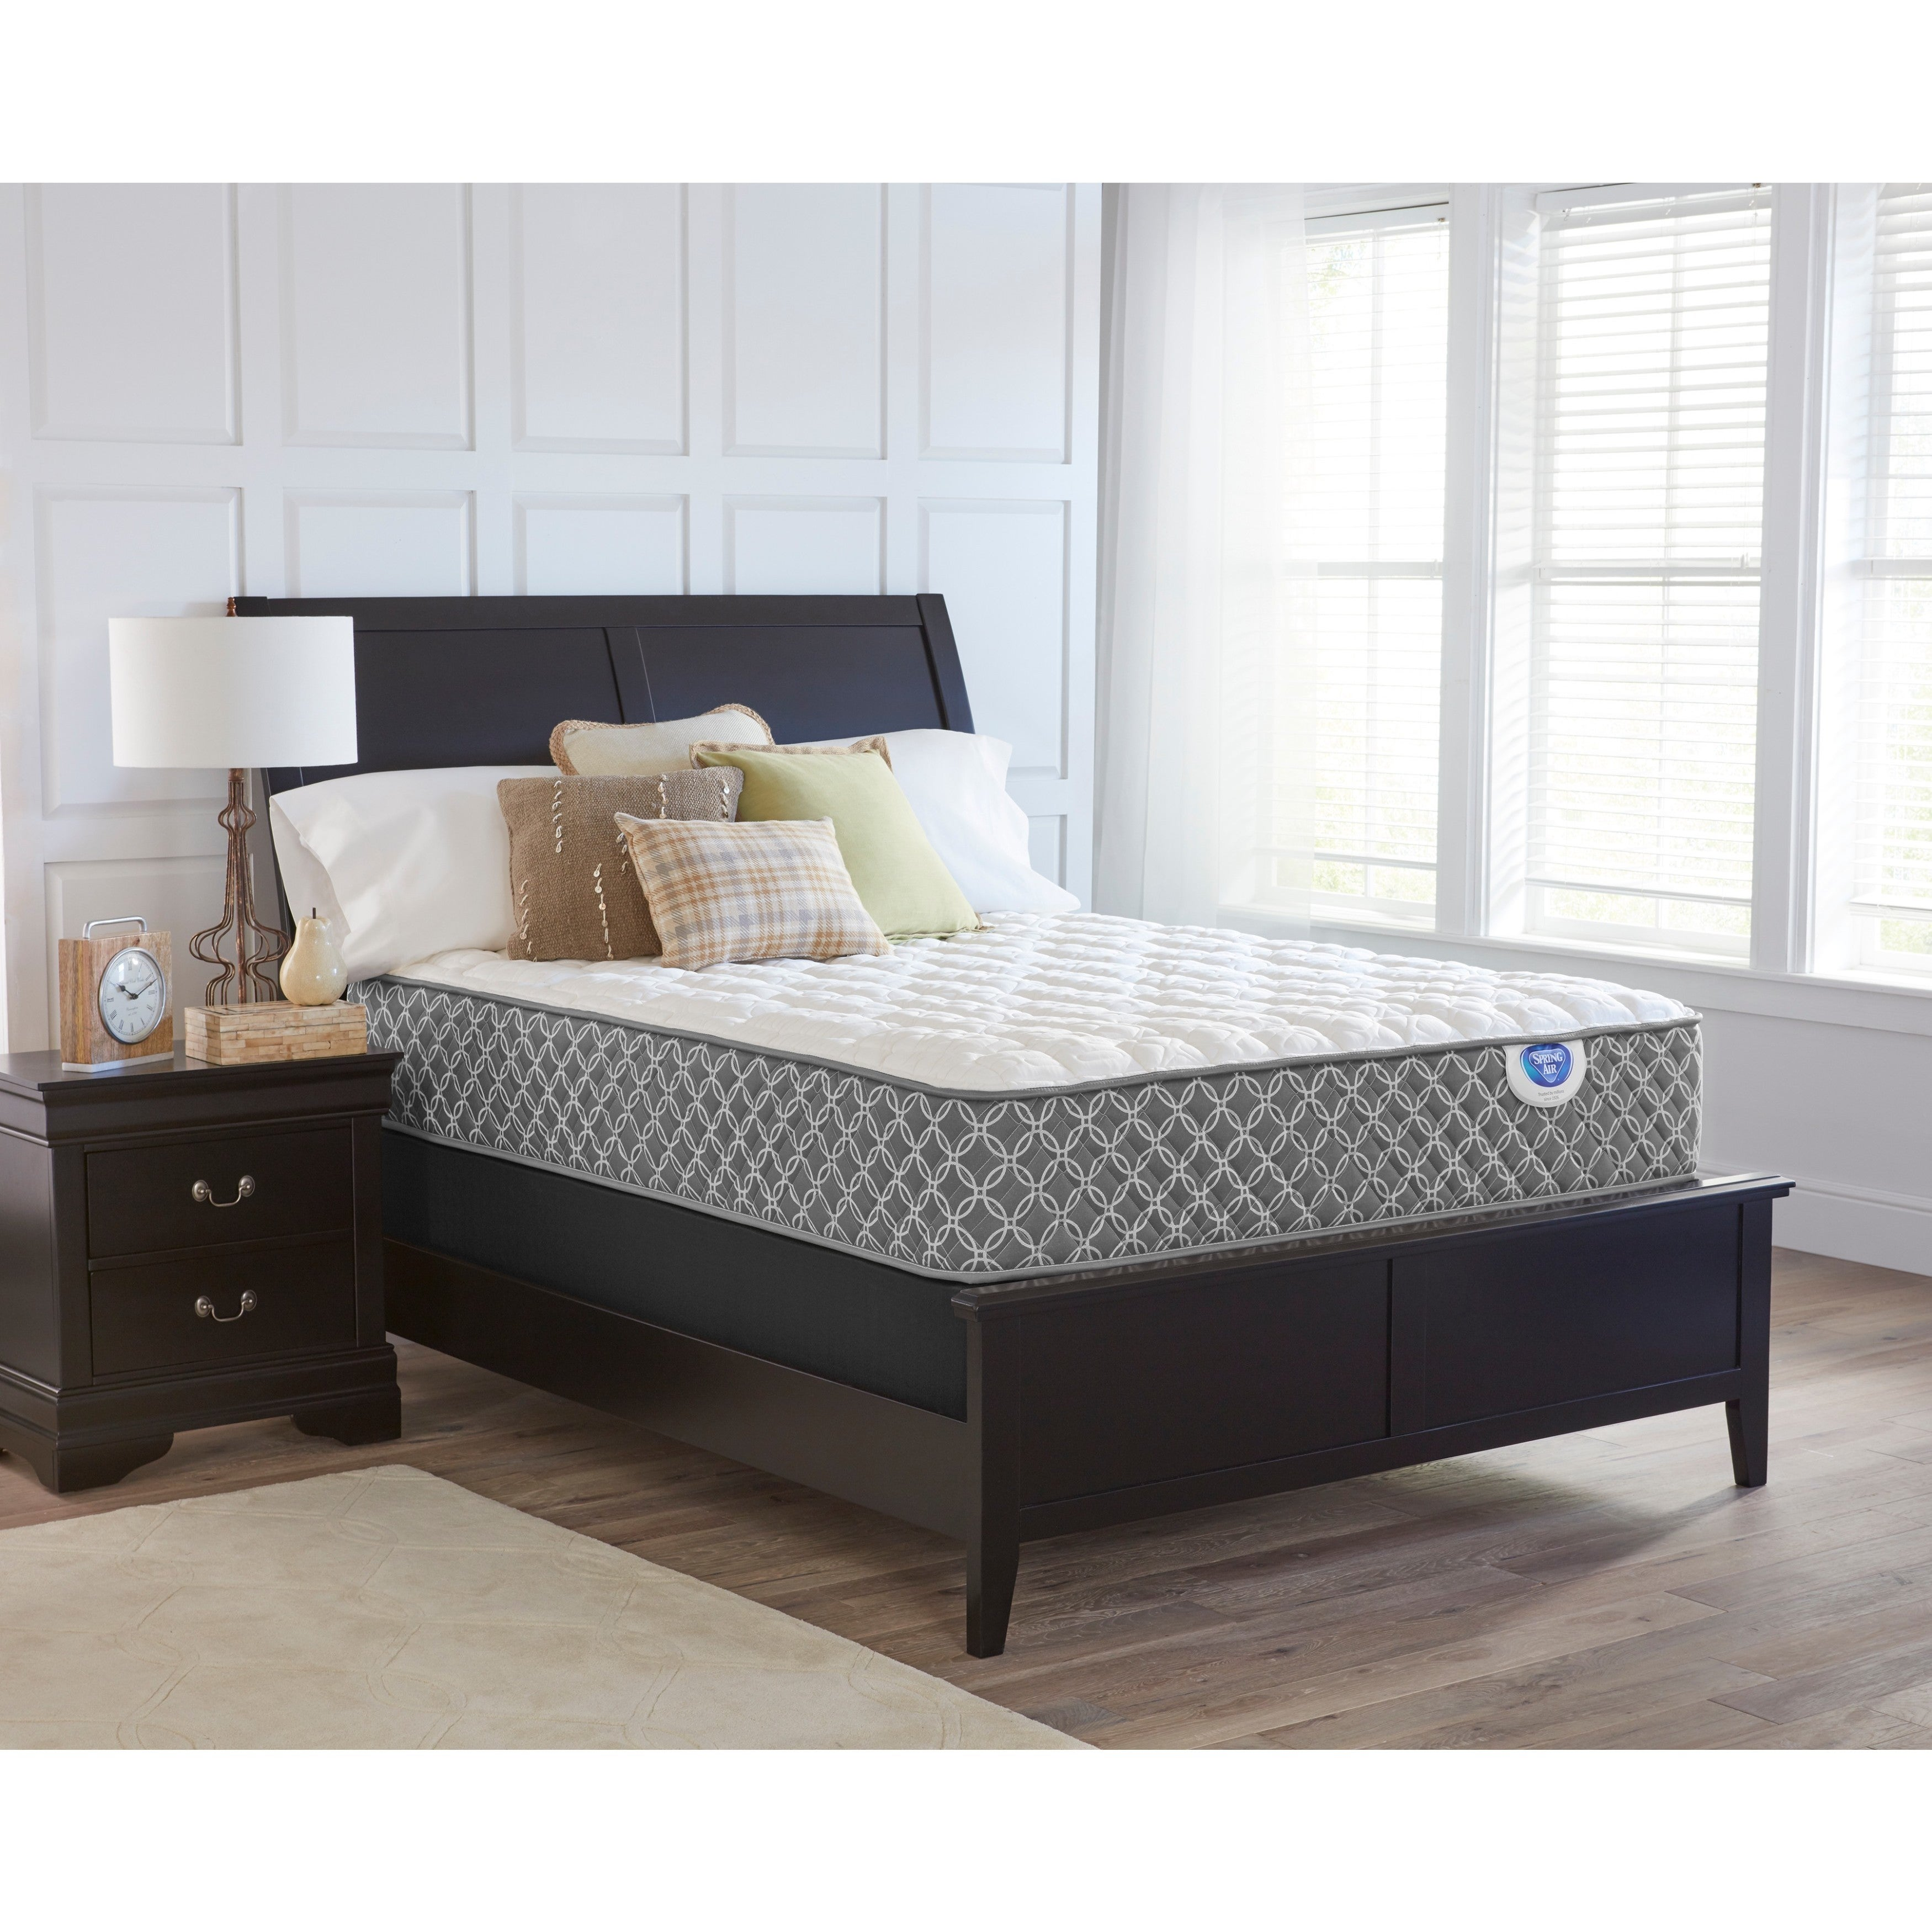 bcaf spring bailey today plush overstock air size queen garden free mattress product home shipping